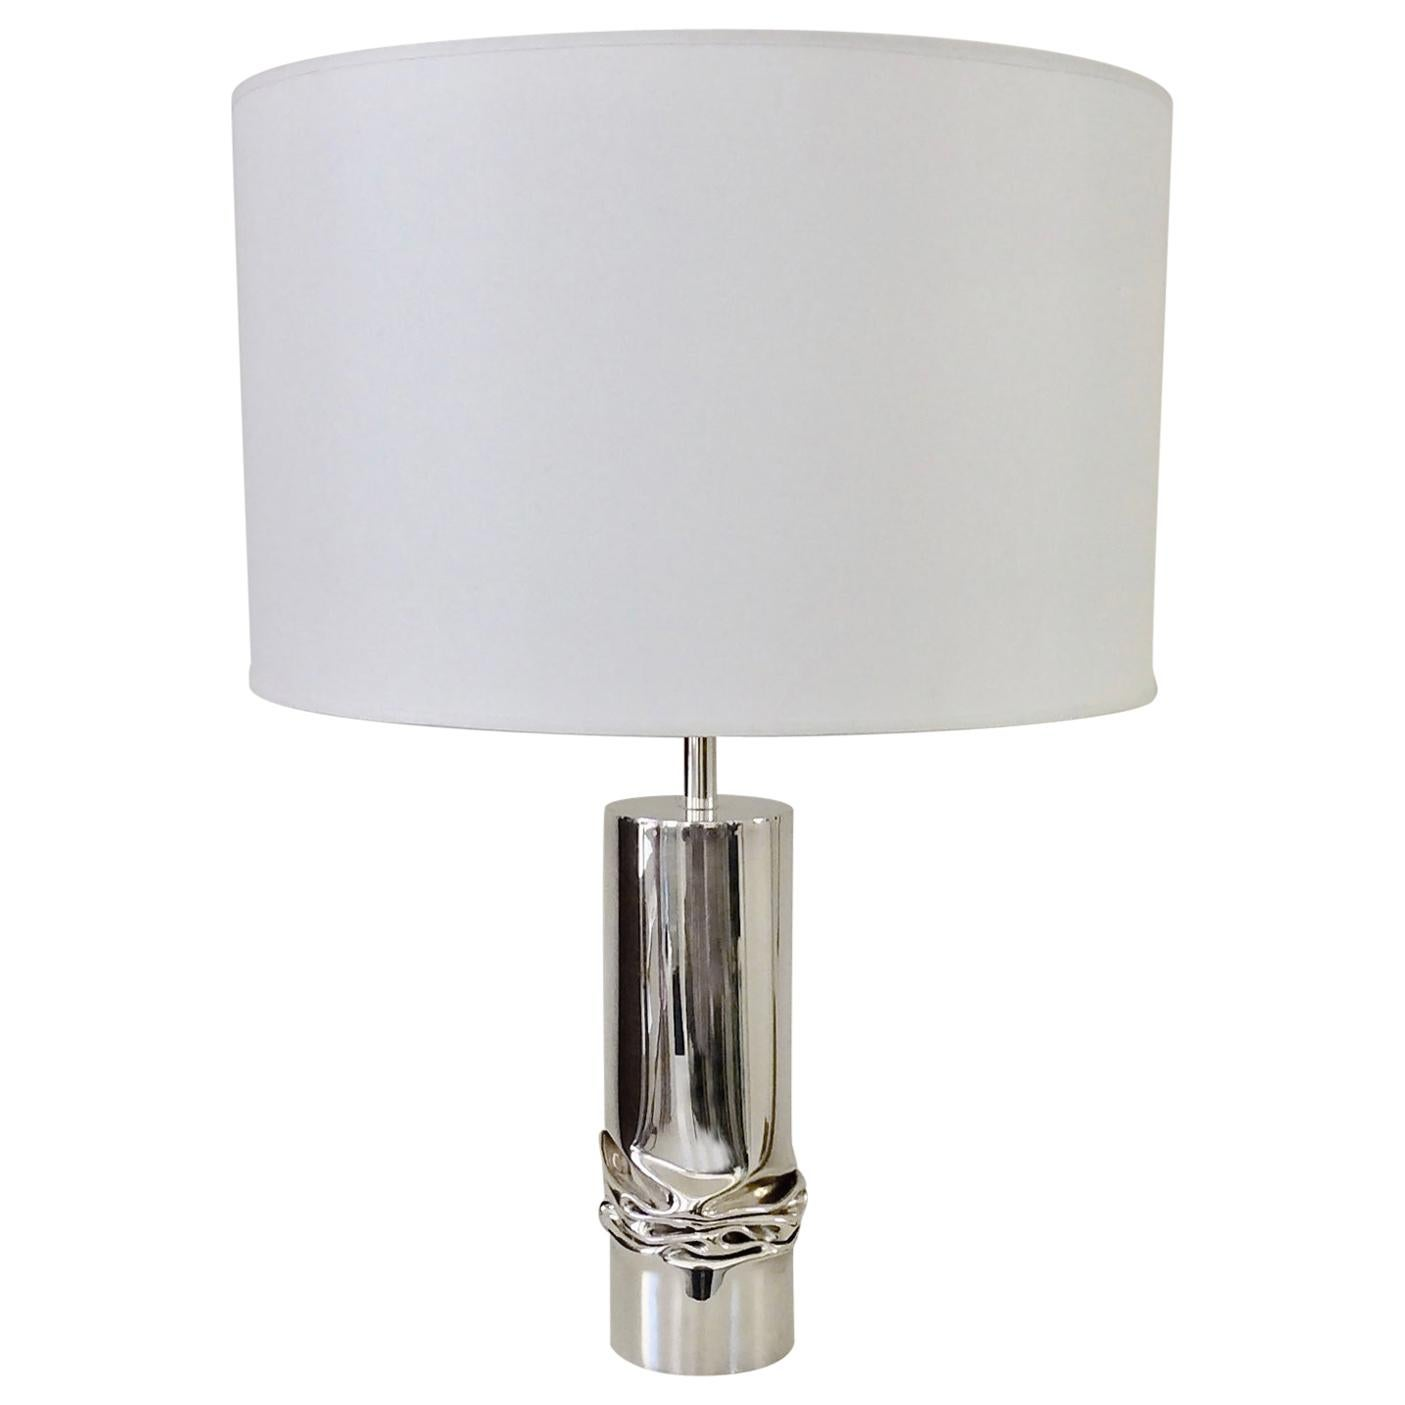 Jacques Moniquet Silver Plated Table Lamp, Cheret Edition, circa 1975, France